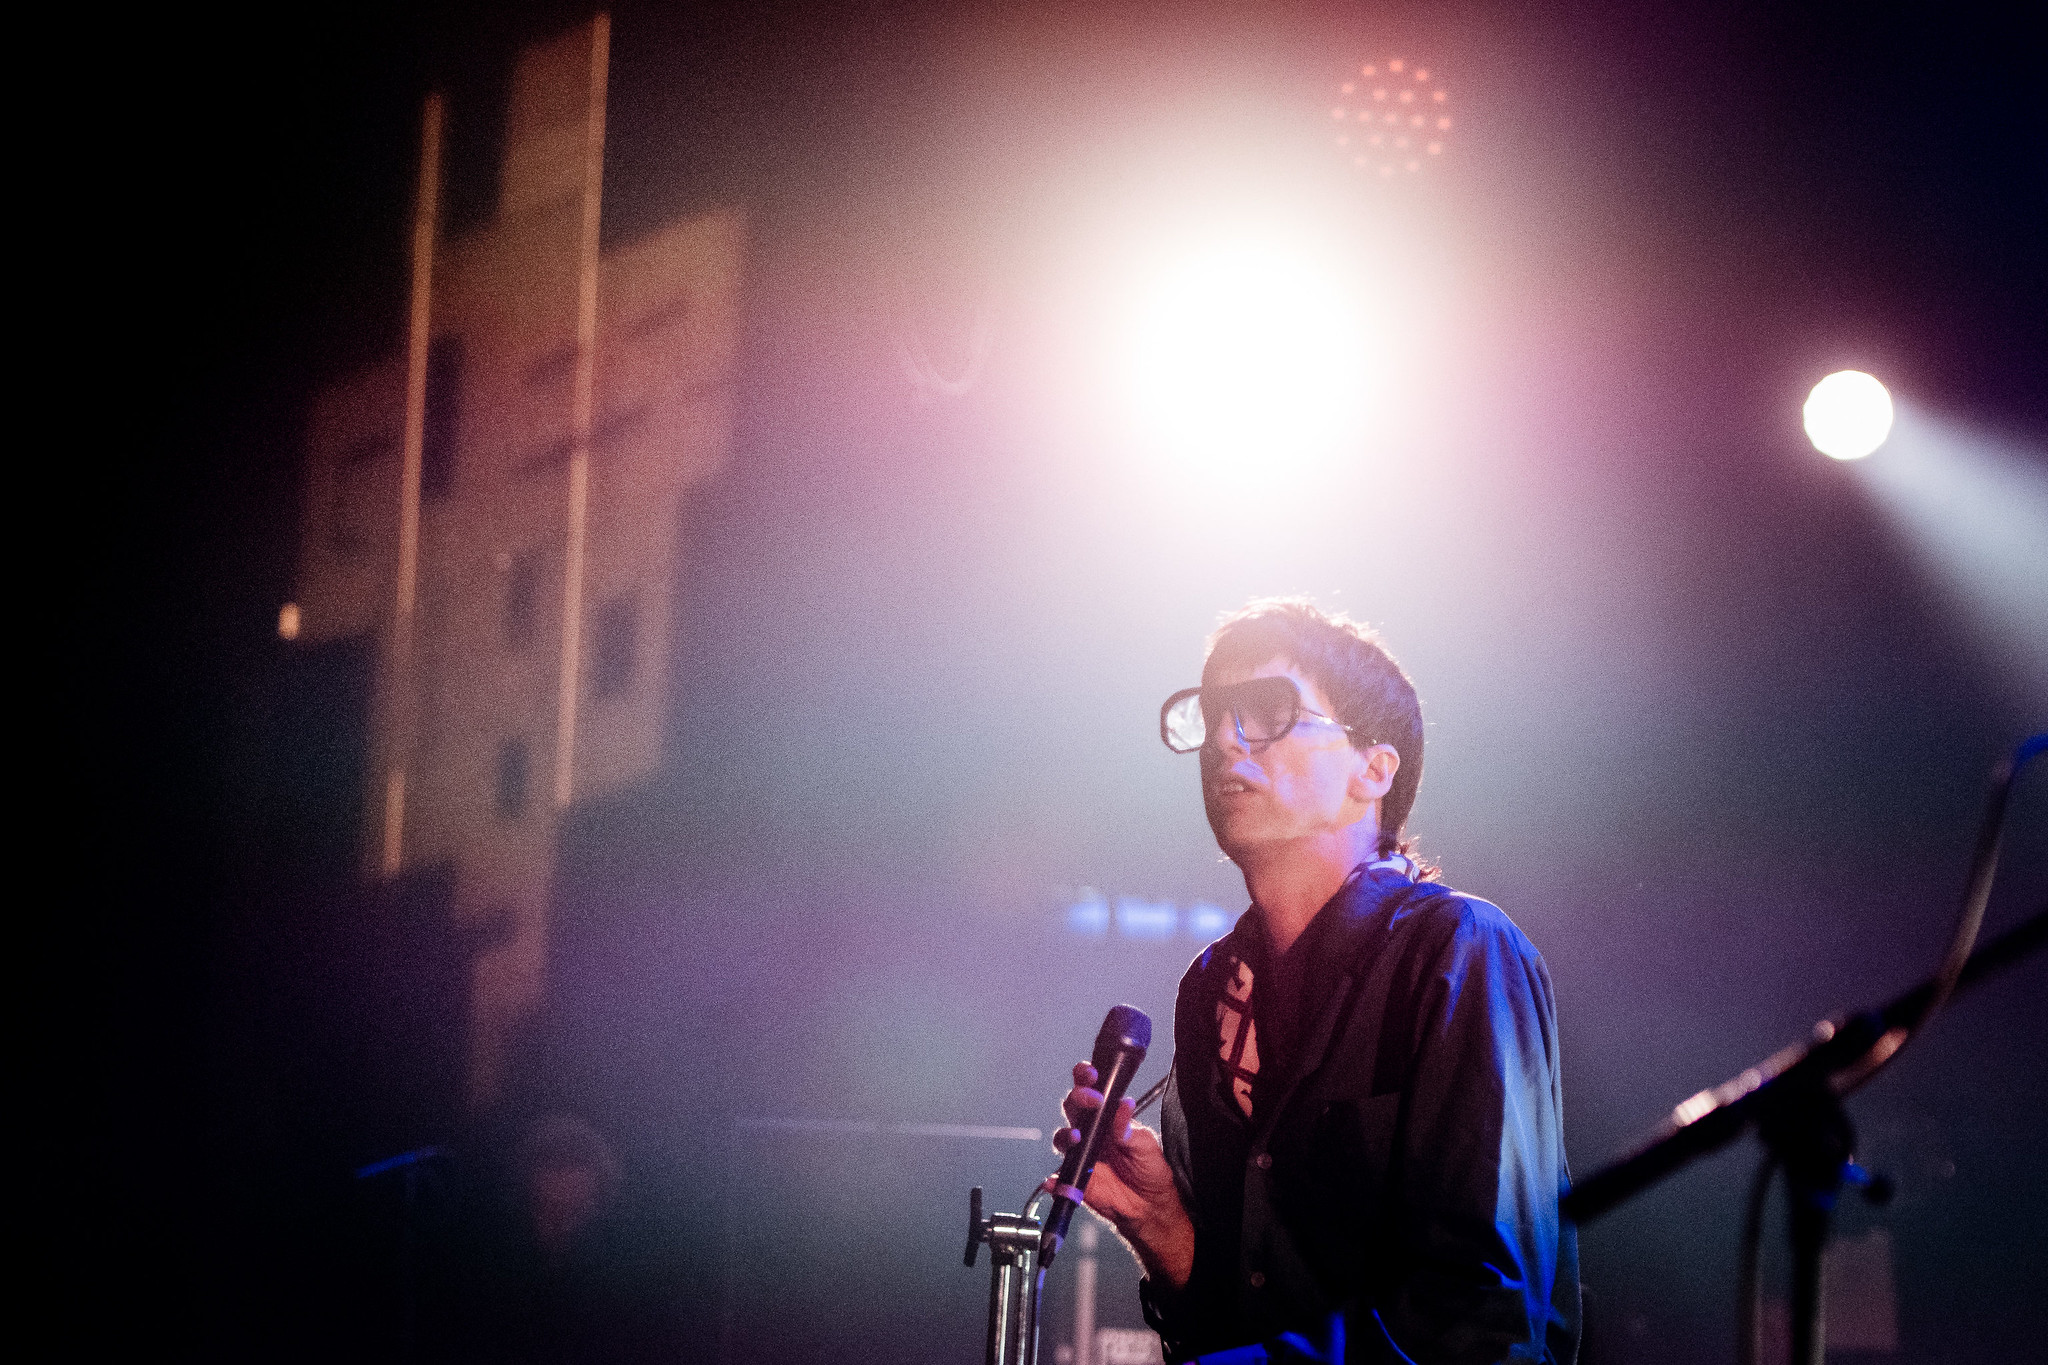 Video: watch Deerhunter perform live at Le Guess Who? 2019